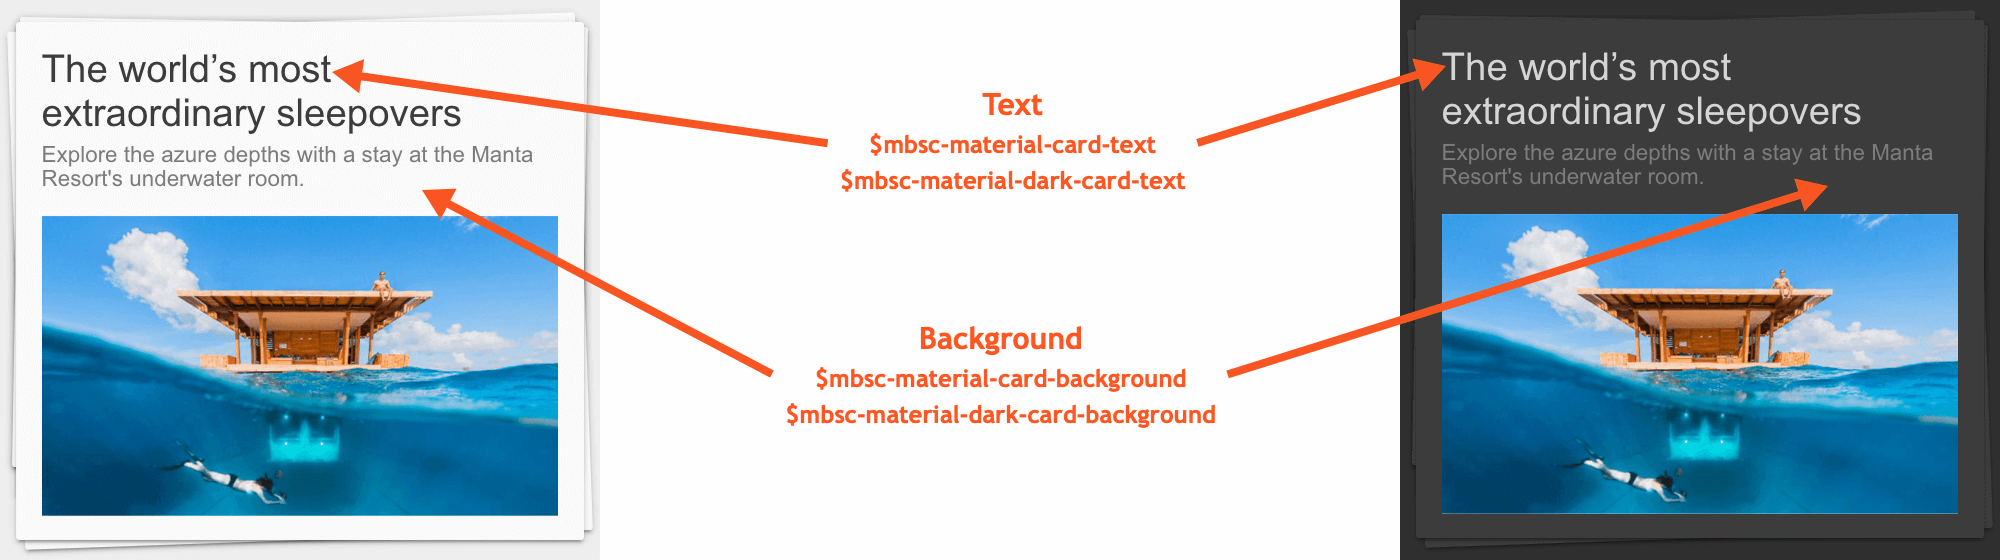 Indication on what the color variables affect